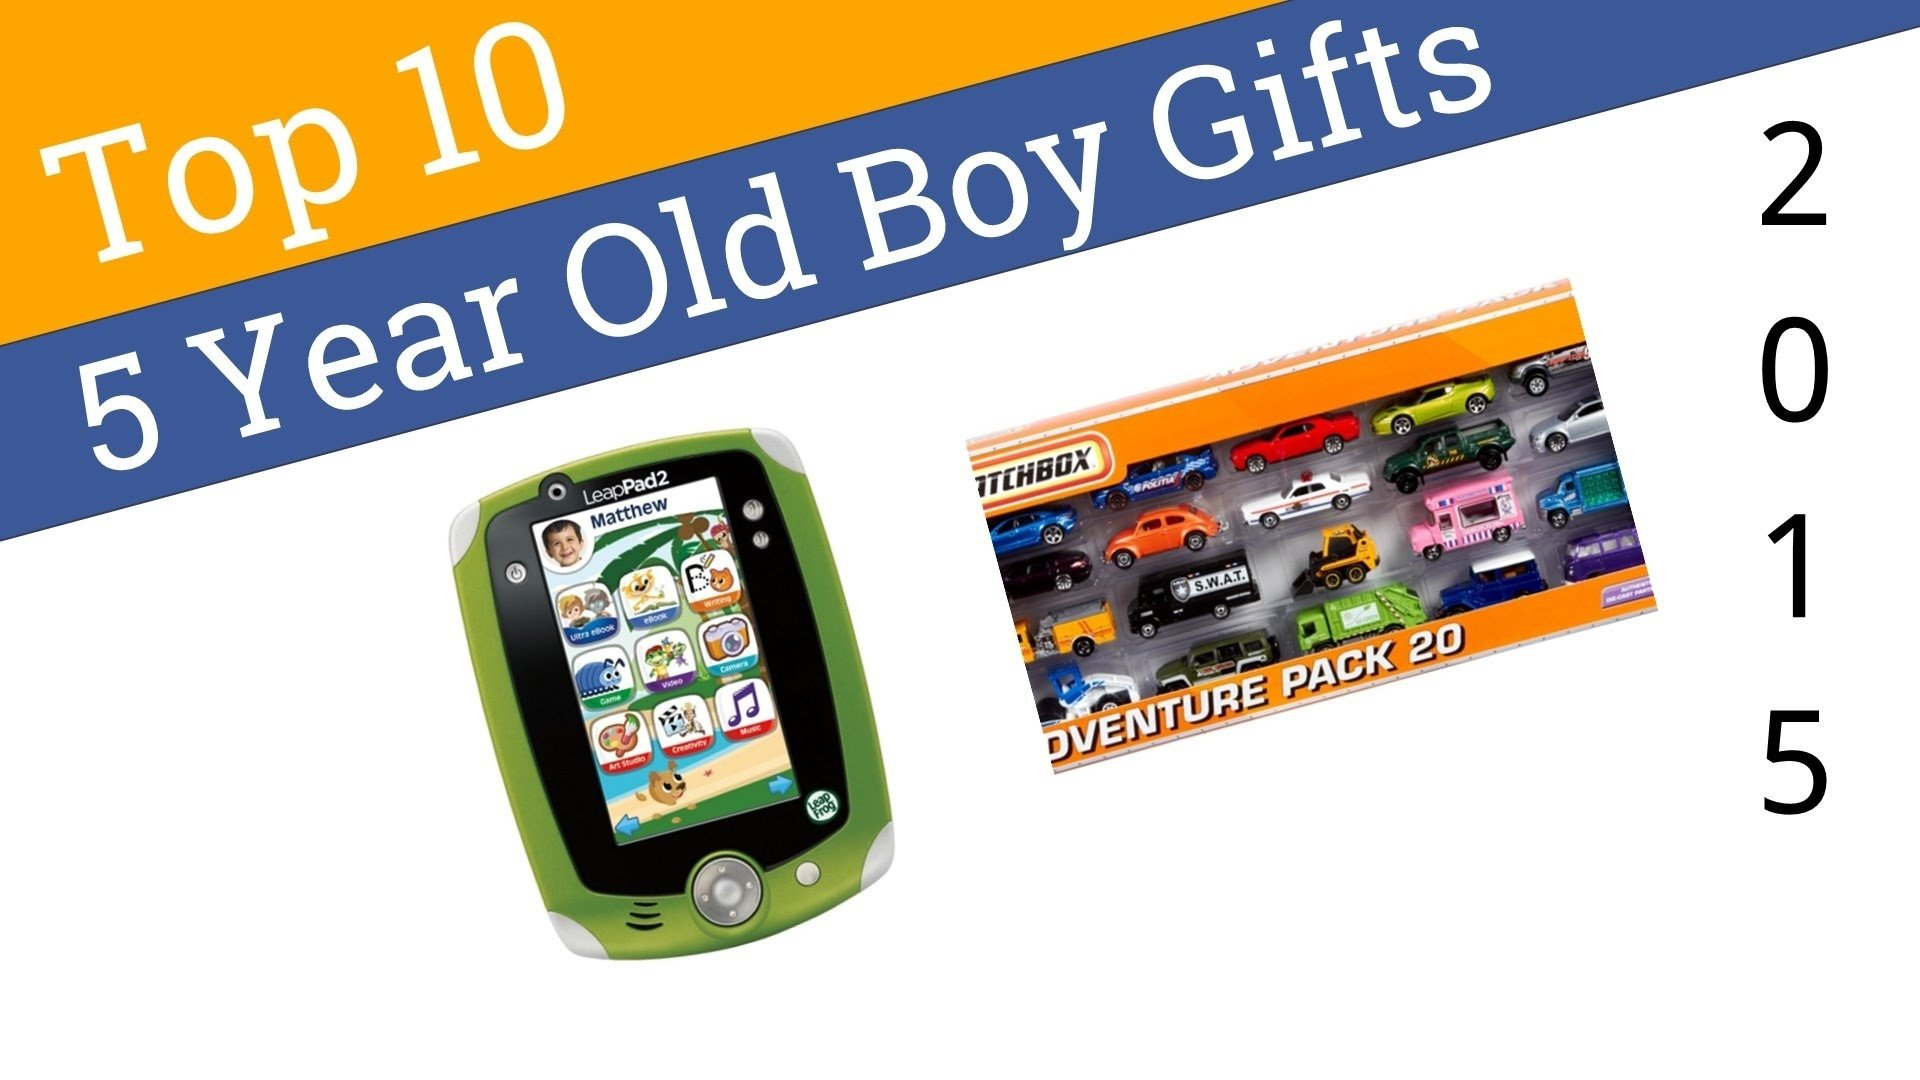 10 Fabulous Gift Idea For 5 Year Old Boy 10 best 5 year old boy gifts 2015 youtube